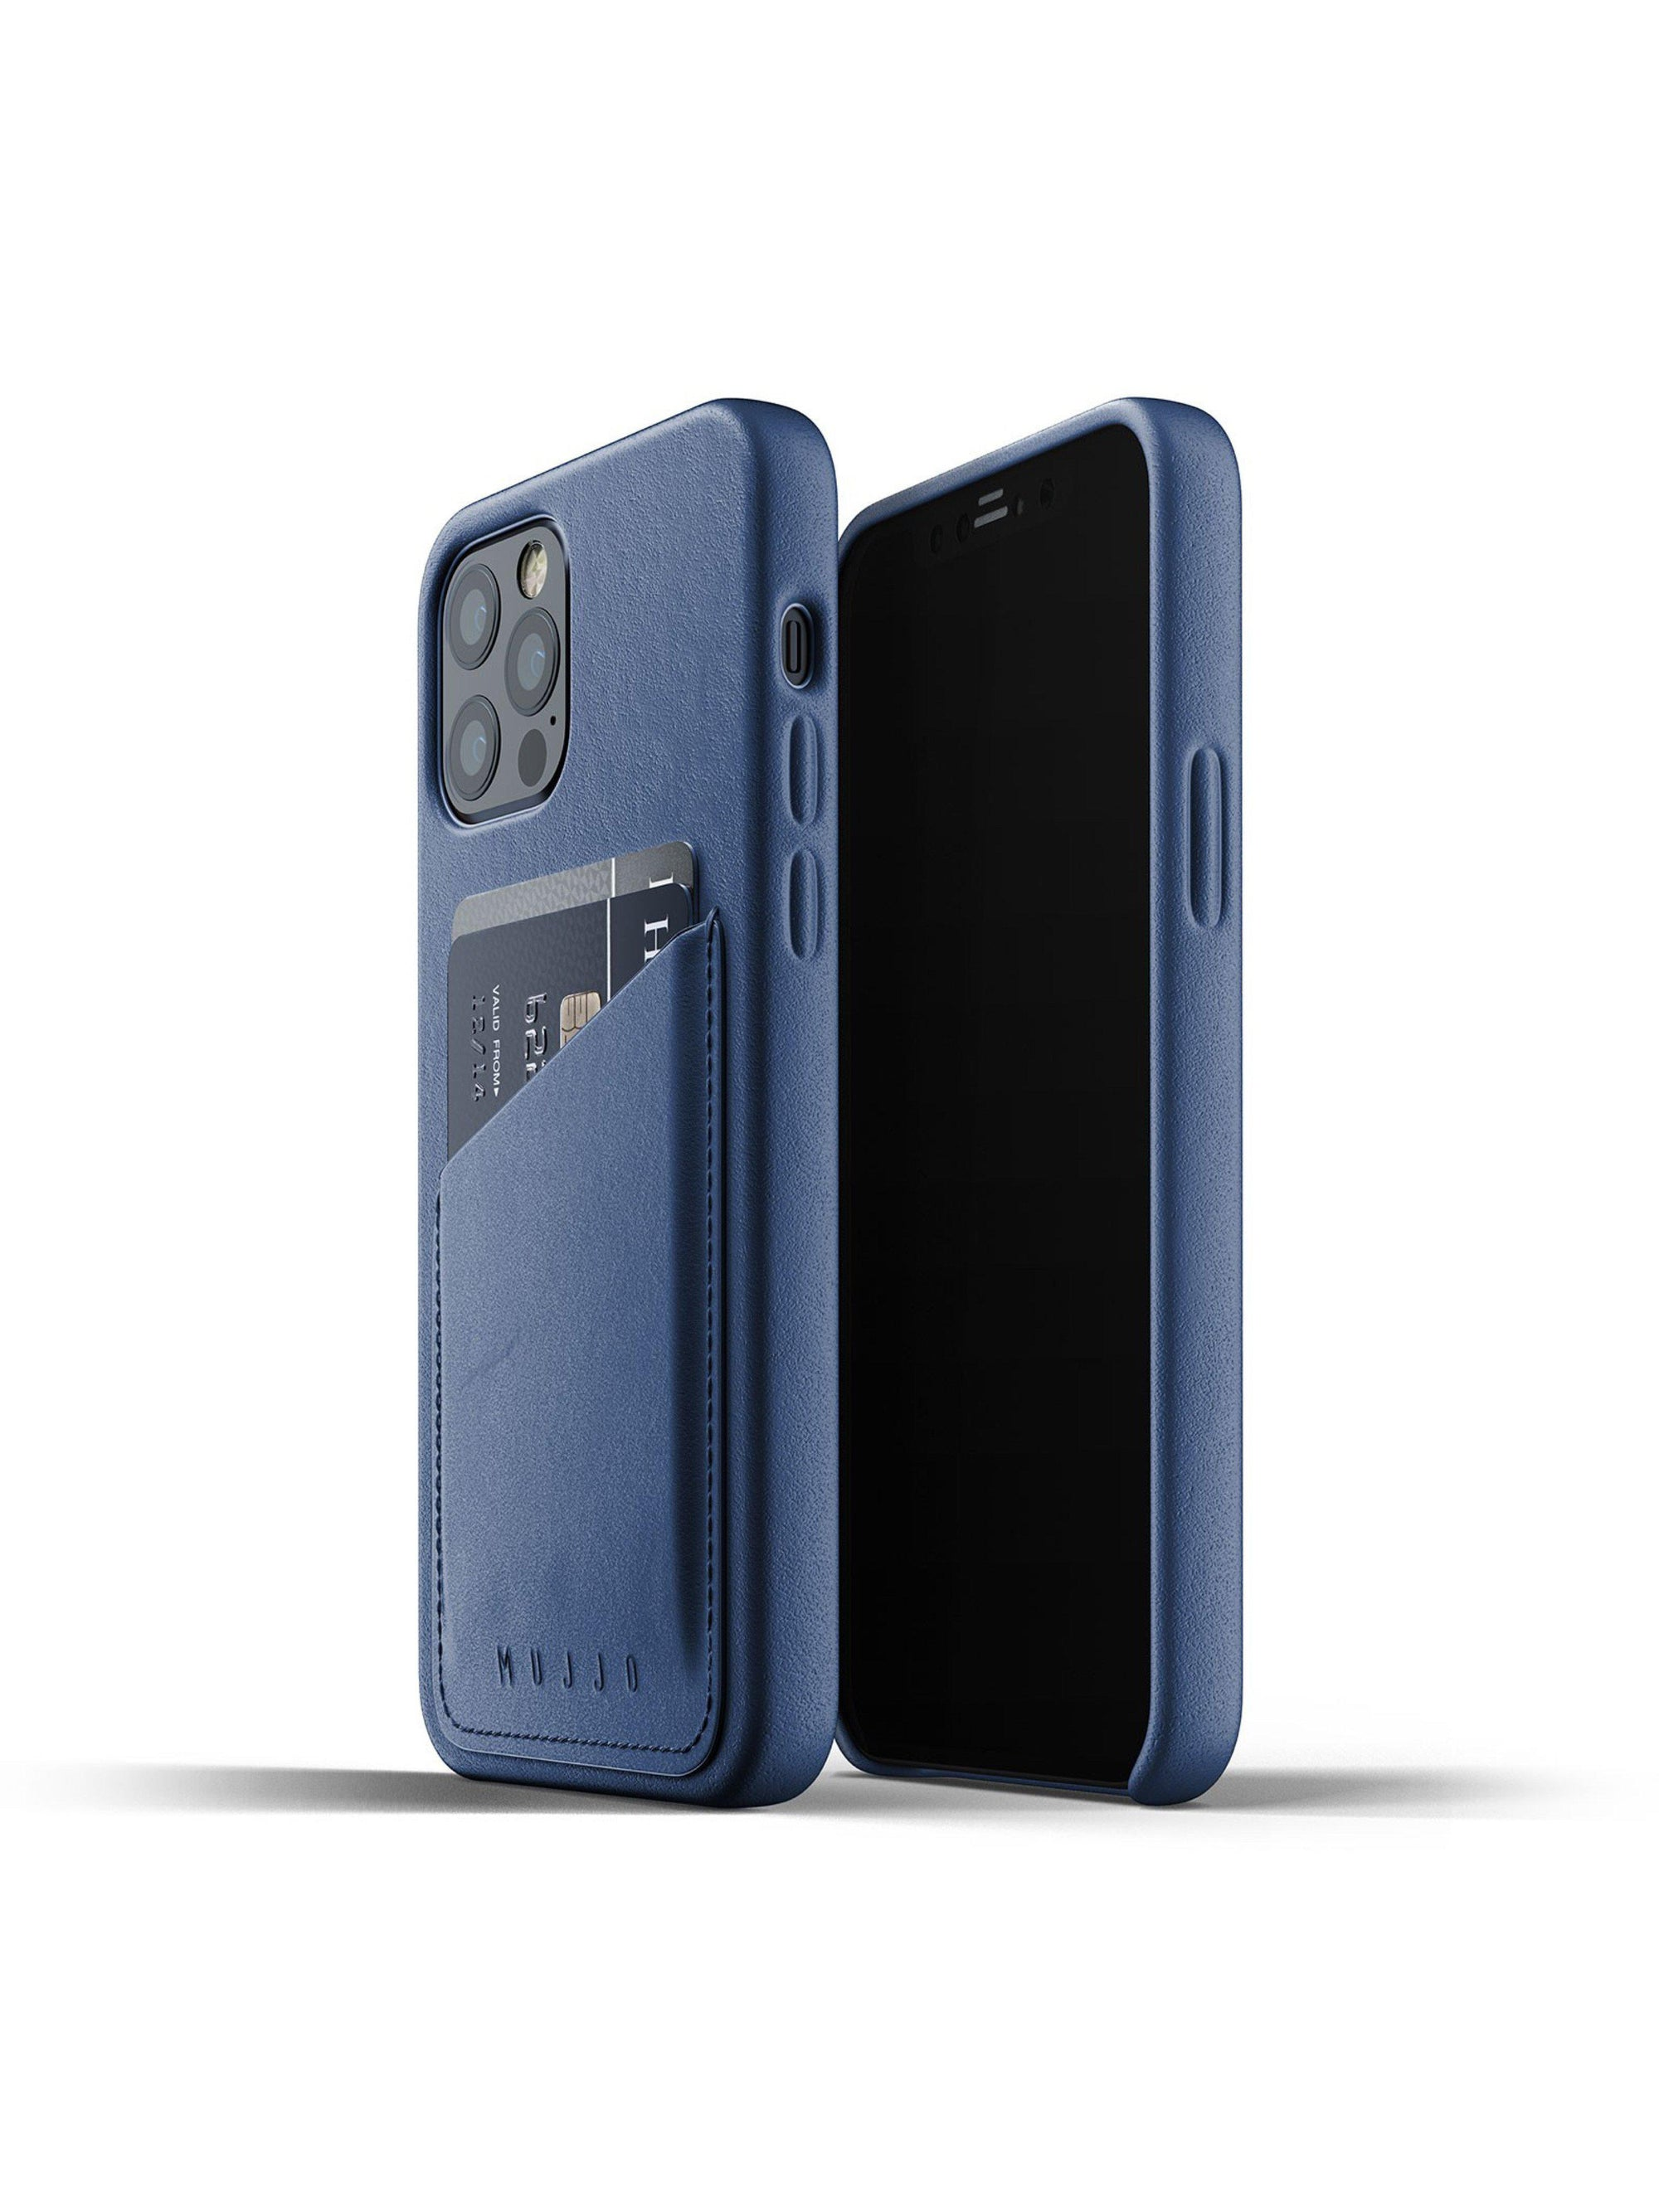 Mujjo Full Leather Wallet Case for iPhone 12 & 12 Pro Monaco Blue